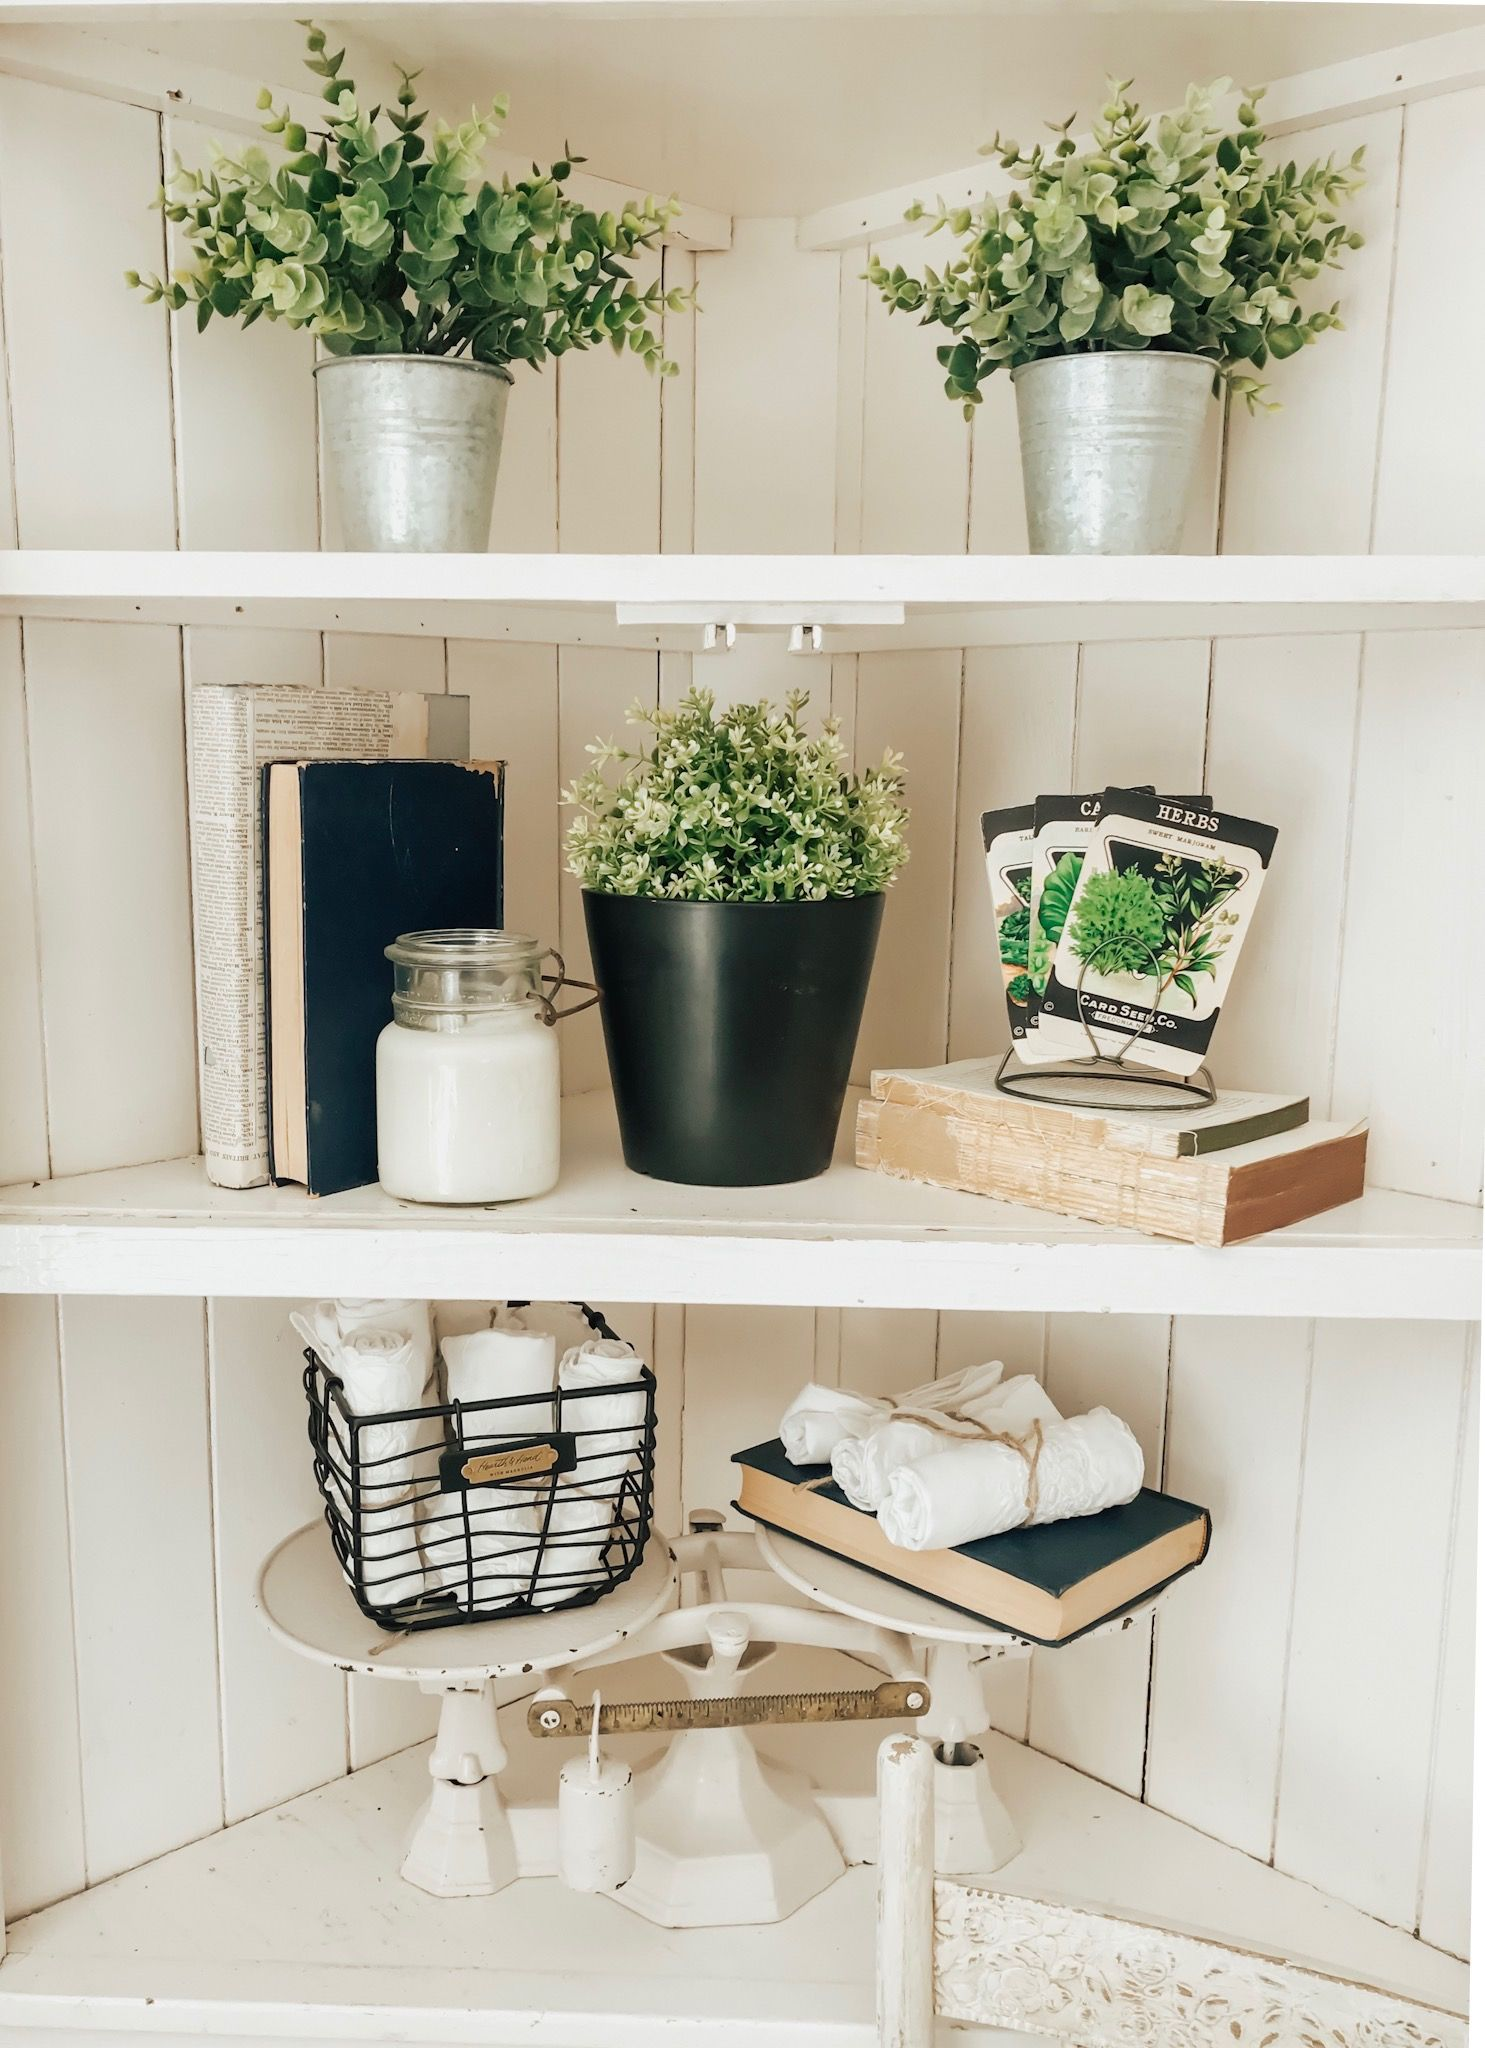 my finds from the old house vintage market with images farmhouse shelves decor shelf decor on kitchen decor ideas farmhouse id=54393